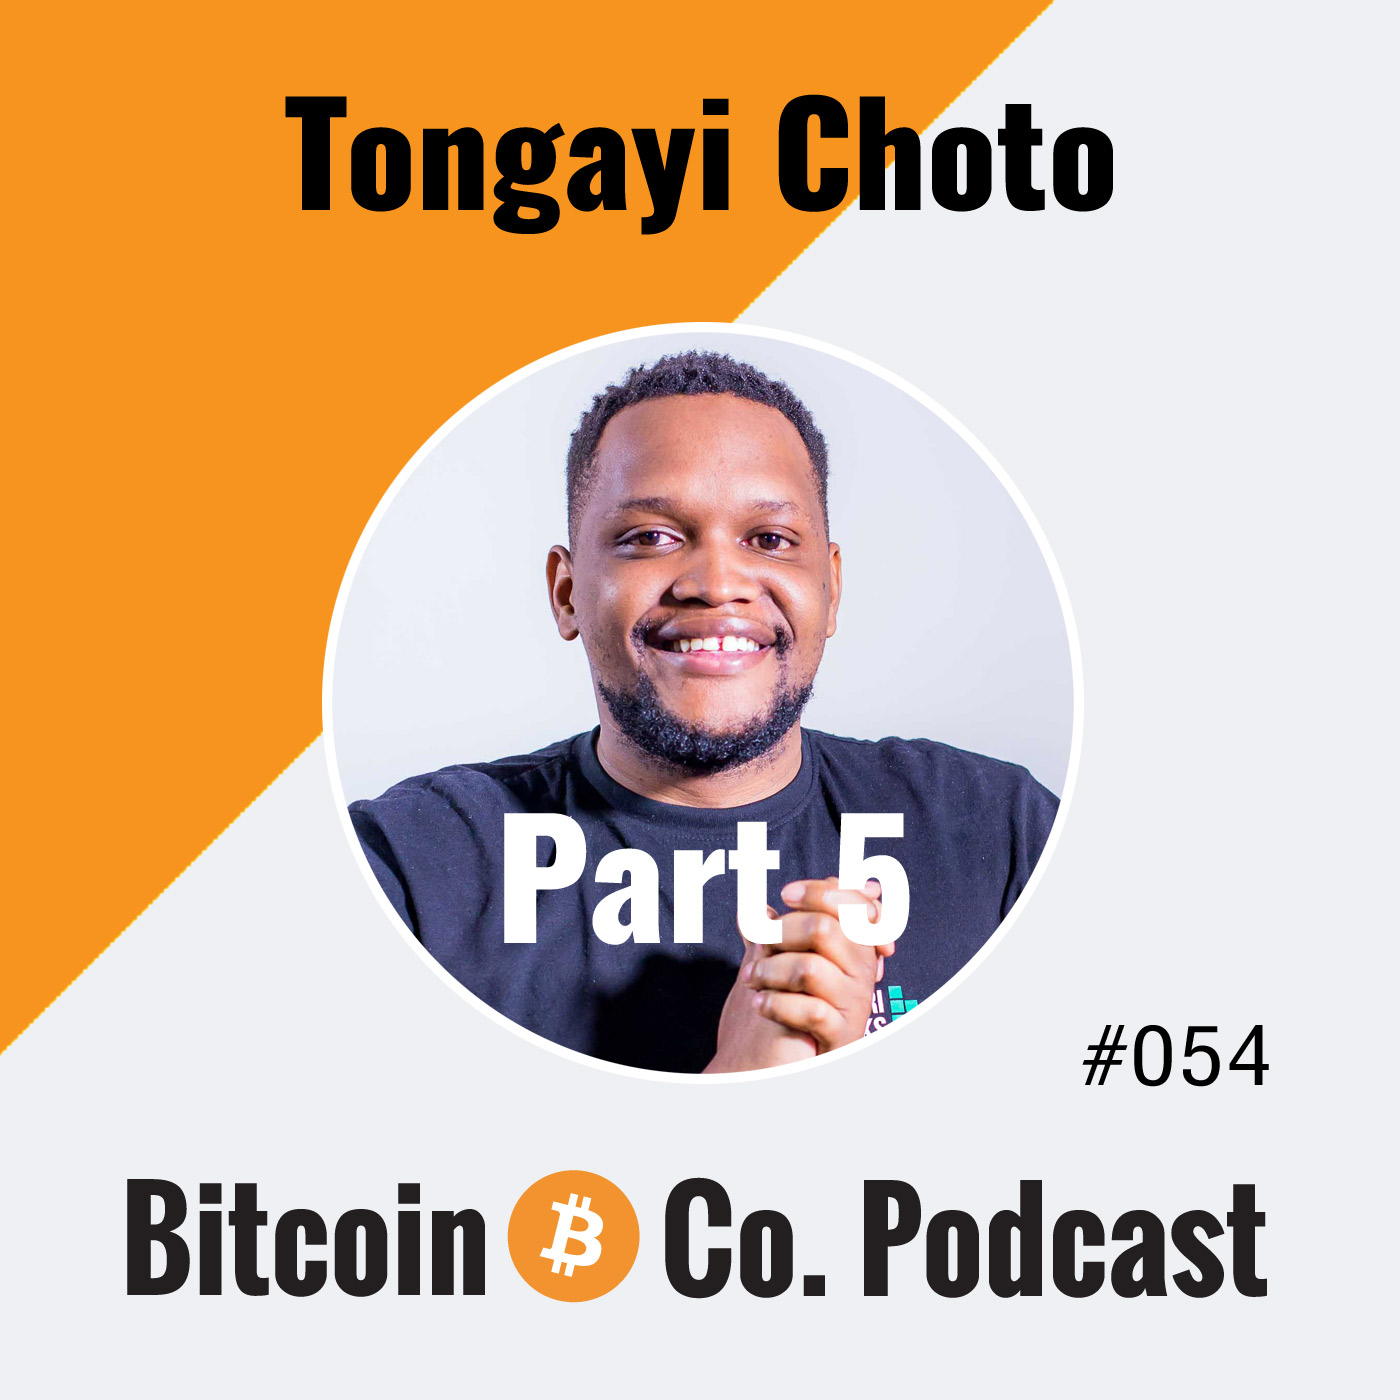 Part 5: Afriblocks, Lightning Network, COVID-19 & Answering Questions – Bitcoin in Africa – The Ubuntu Way